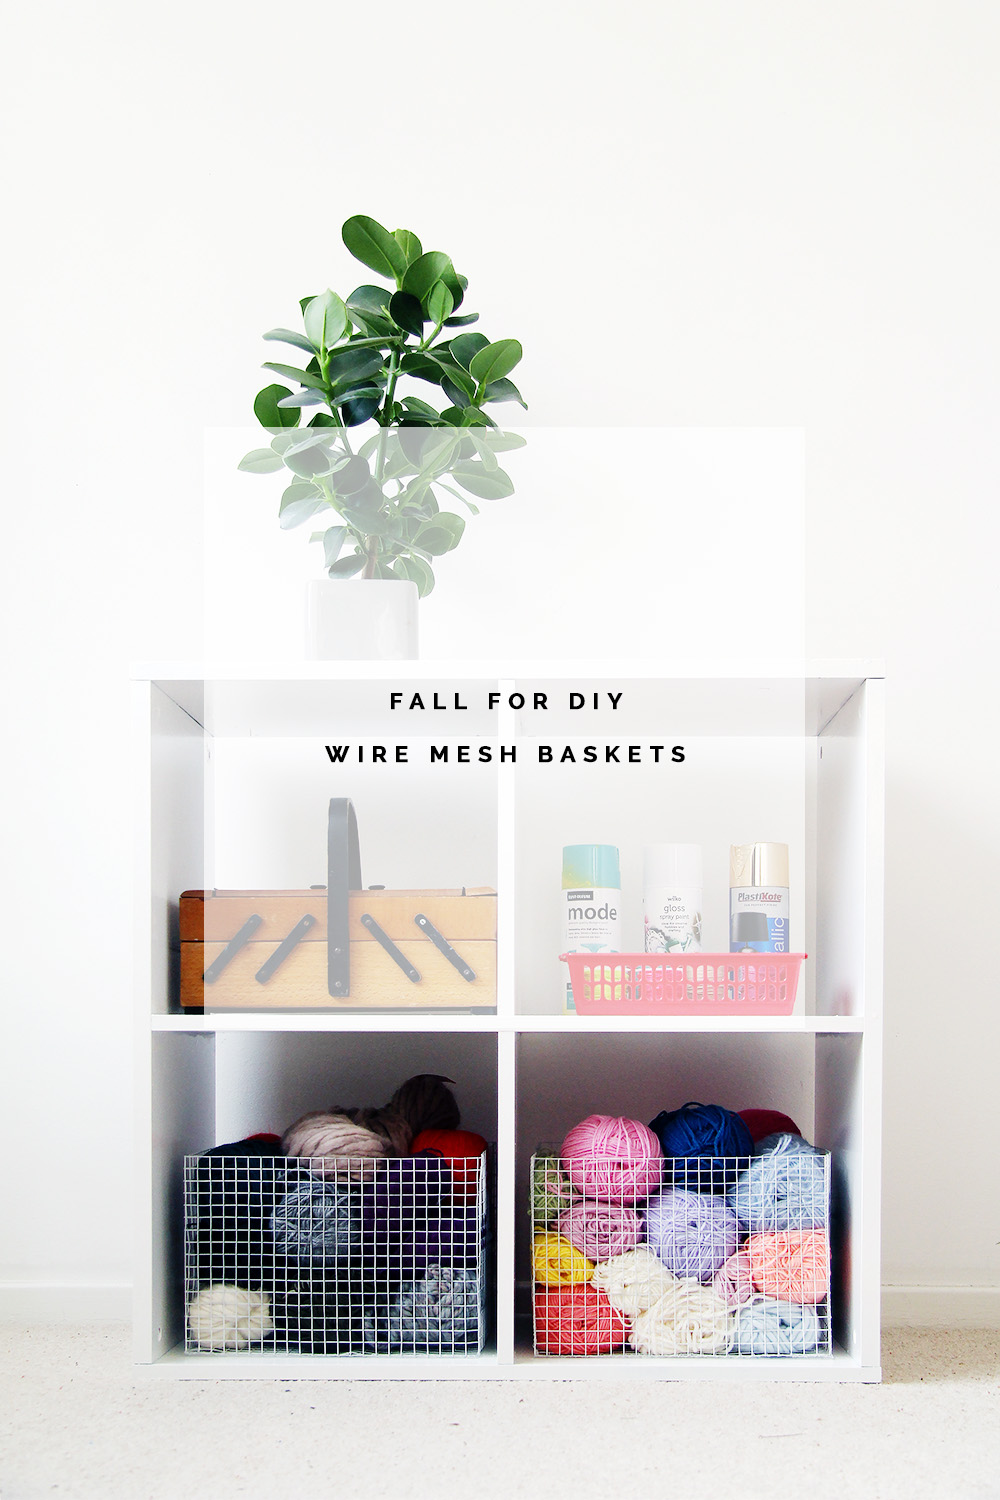 Fall For DIY Wire Mesh Baskets Tutorial